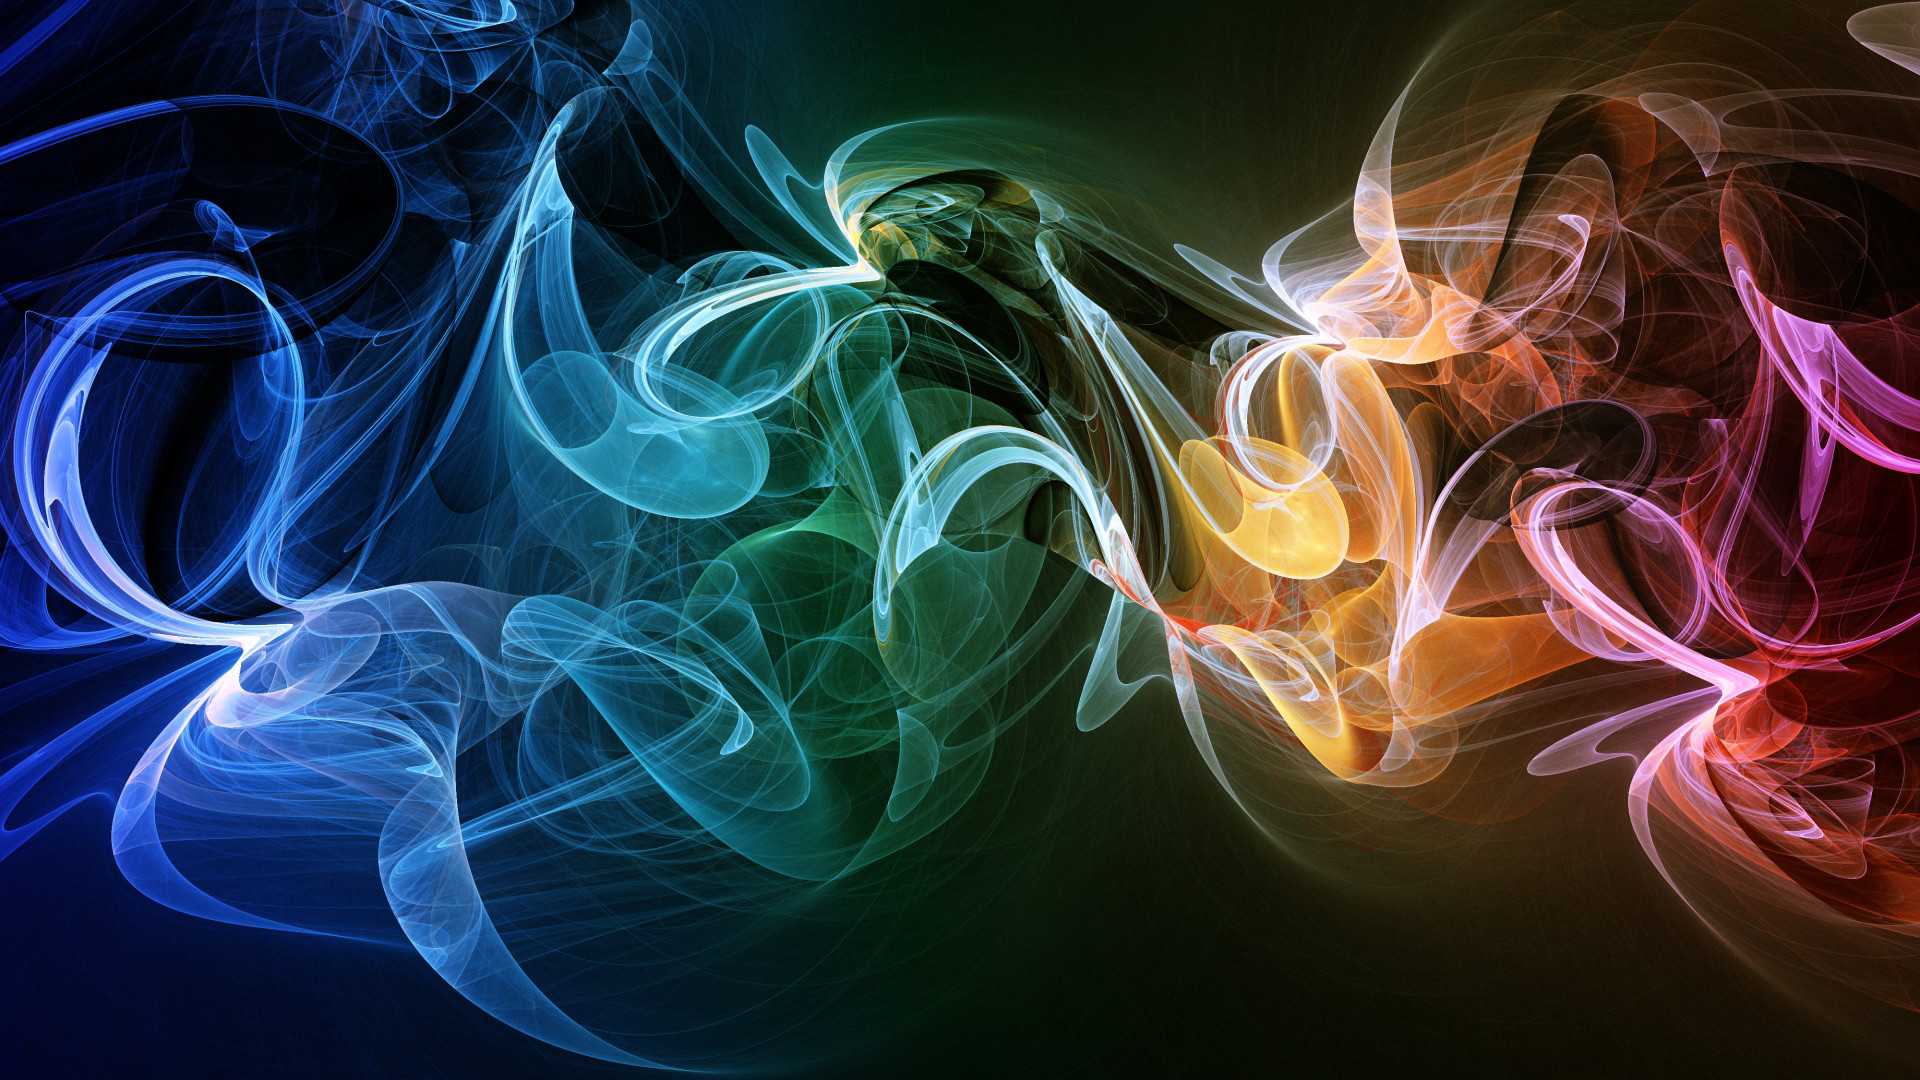 Abstract HD Wallpapers 1920x1080 (55+ images)